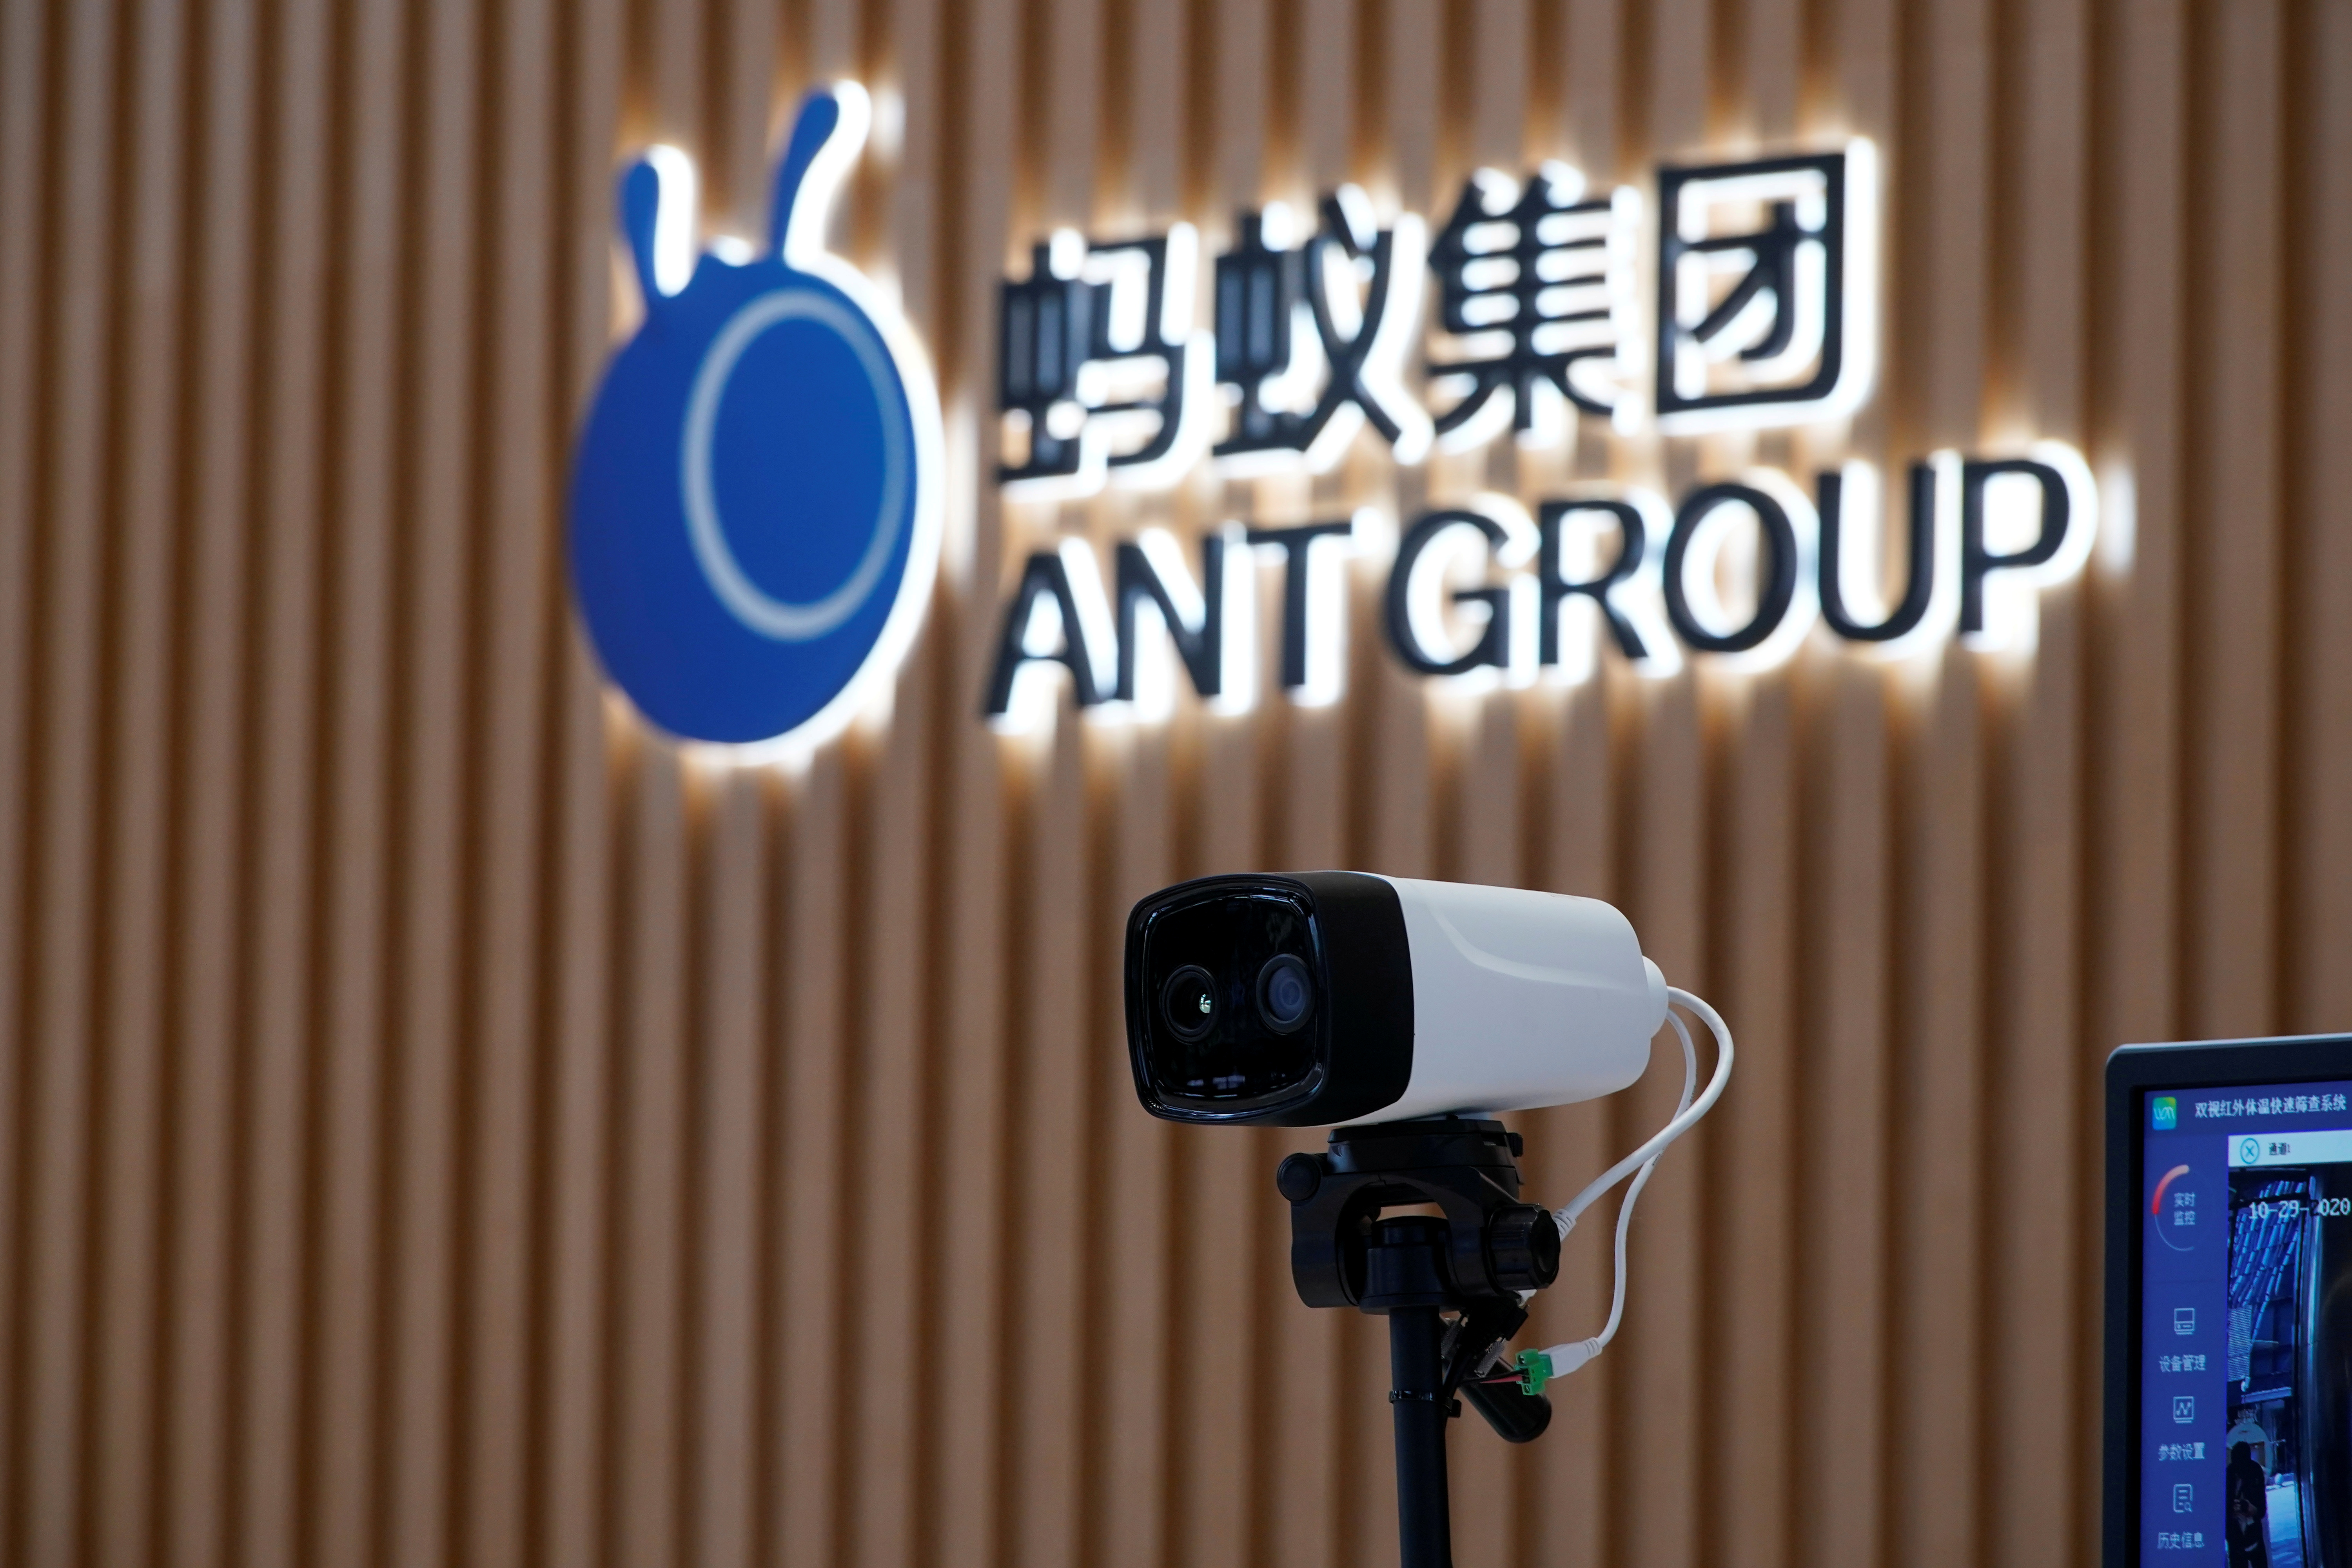 A thermal imaging camera is seen in front of a logo of Ant Group at the headquarters of Ant Group, an affiliate of Alibaba, in Hangzhou, Zhejiang province, China October 29, 2020.  REUTERS/Aly Song